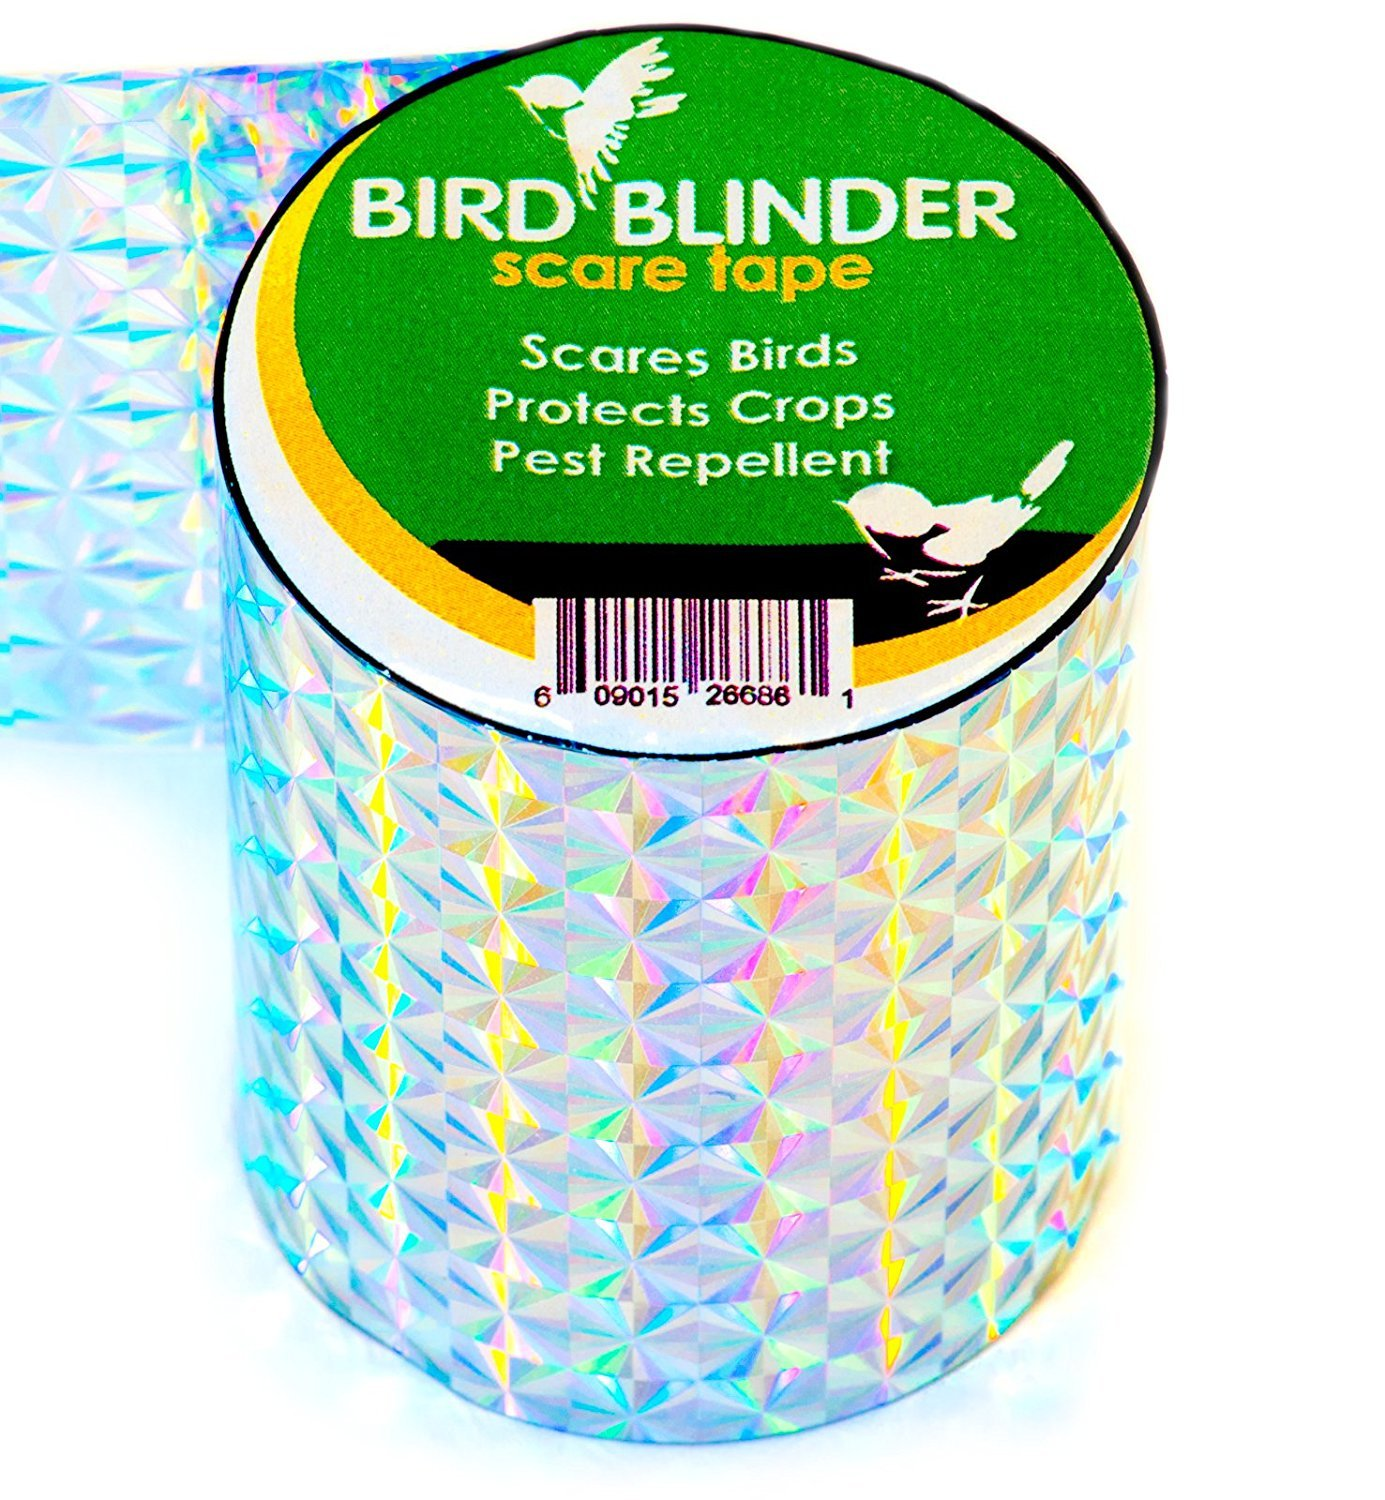 Bird Blinder - The Original Bird Repellent Scare Tape (Diamond) - 147 feet  x 2 inch Deterrent